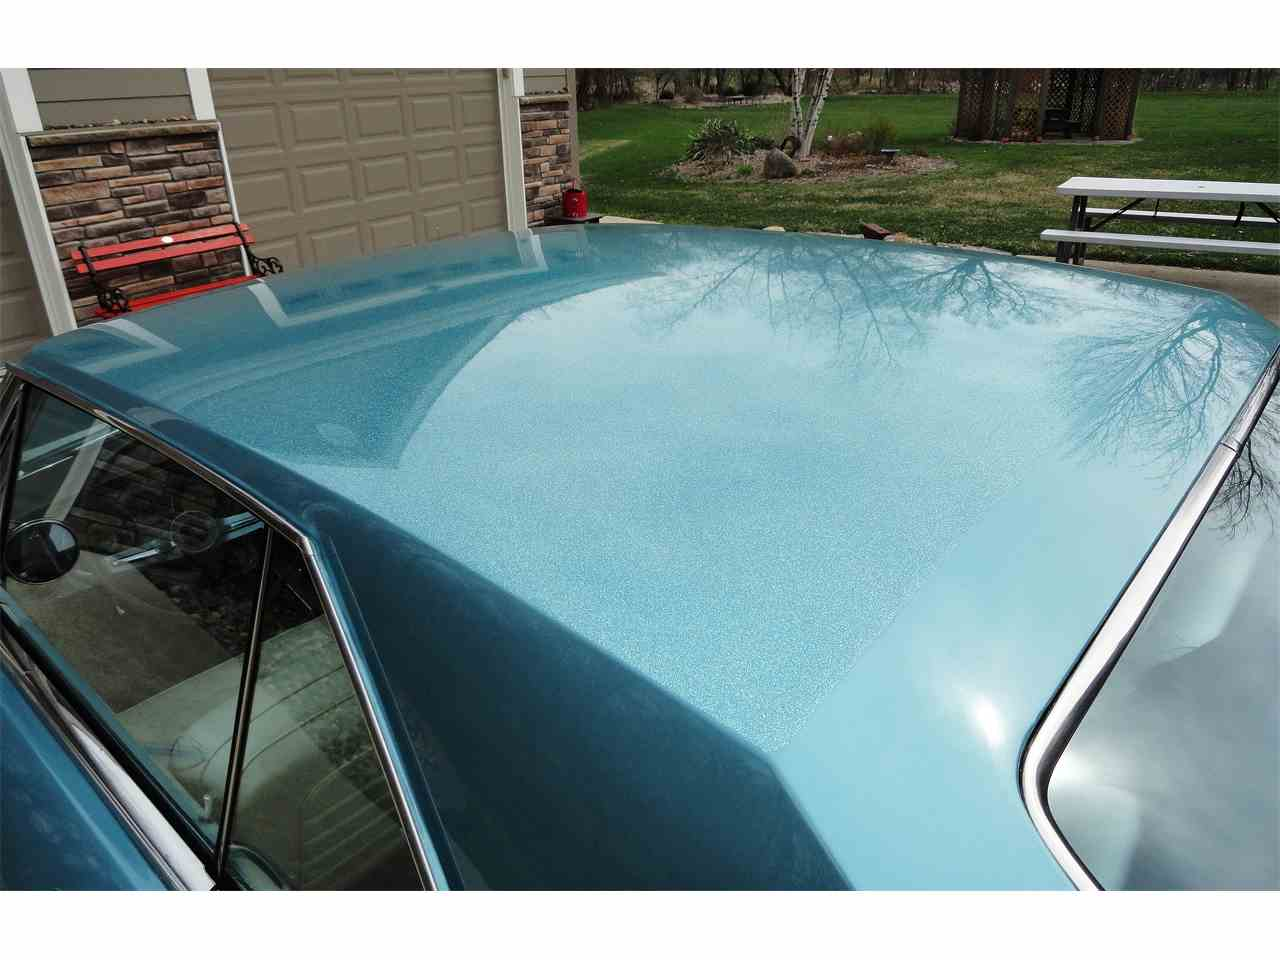 Large Picture of Classic '64 Buick Riviera located in Urbandale Iowa Offered by a Private Seller - NCAV